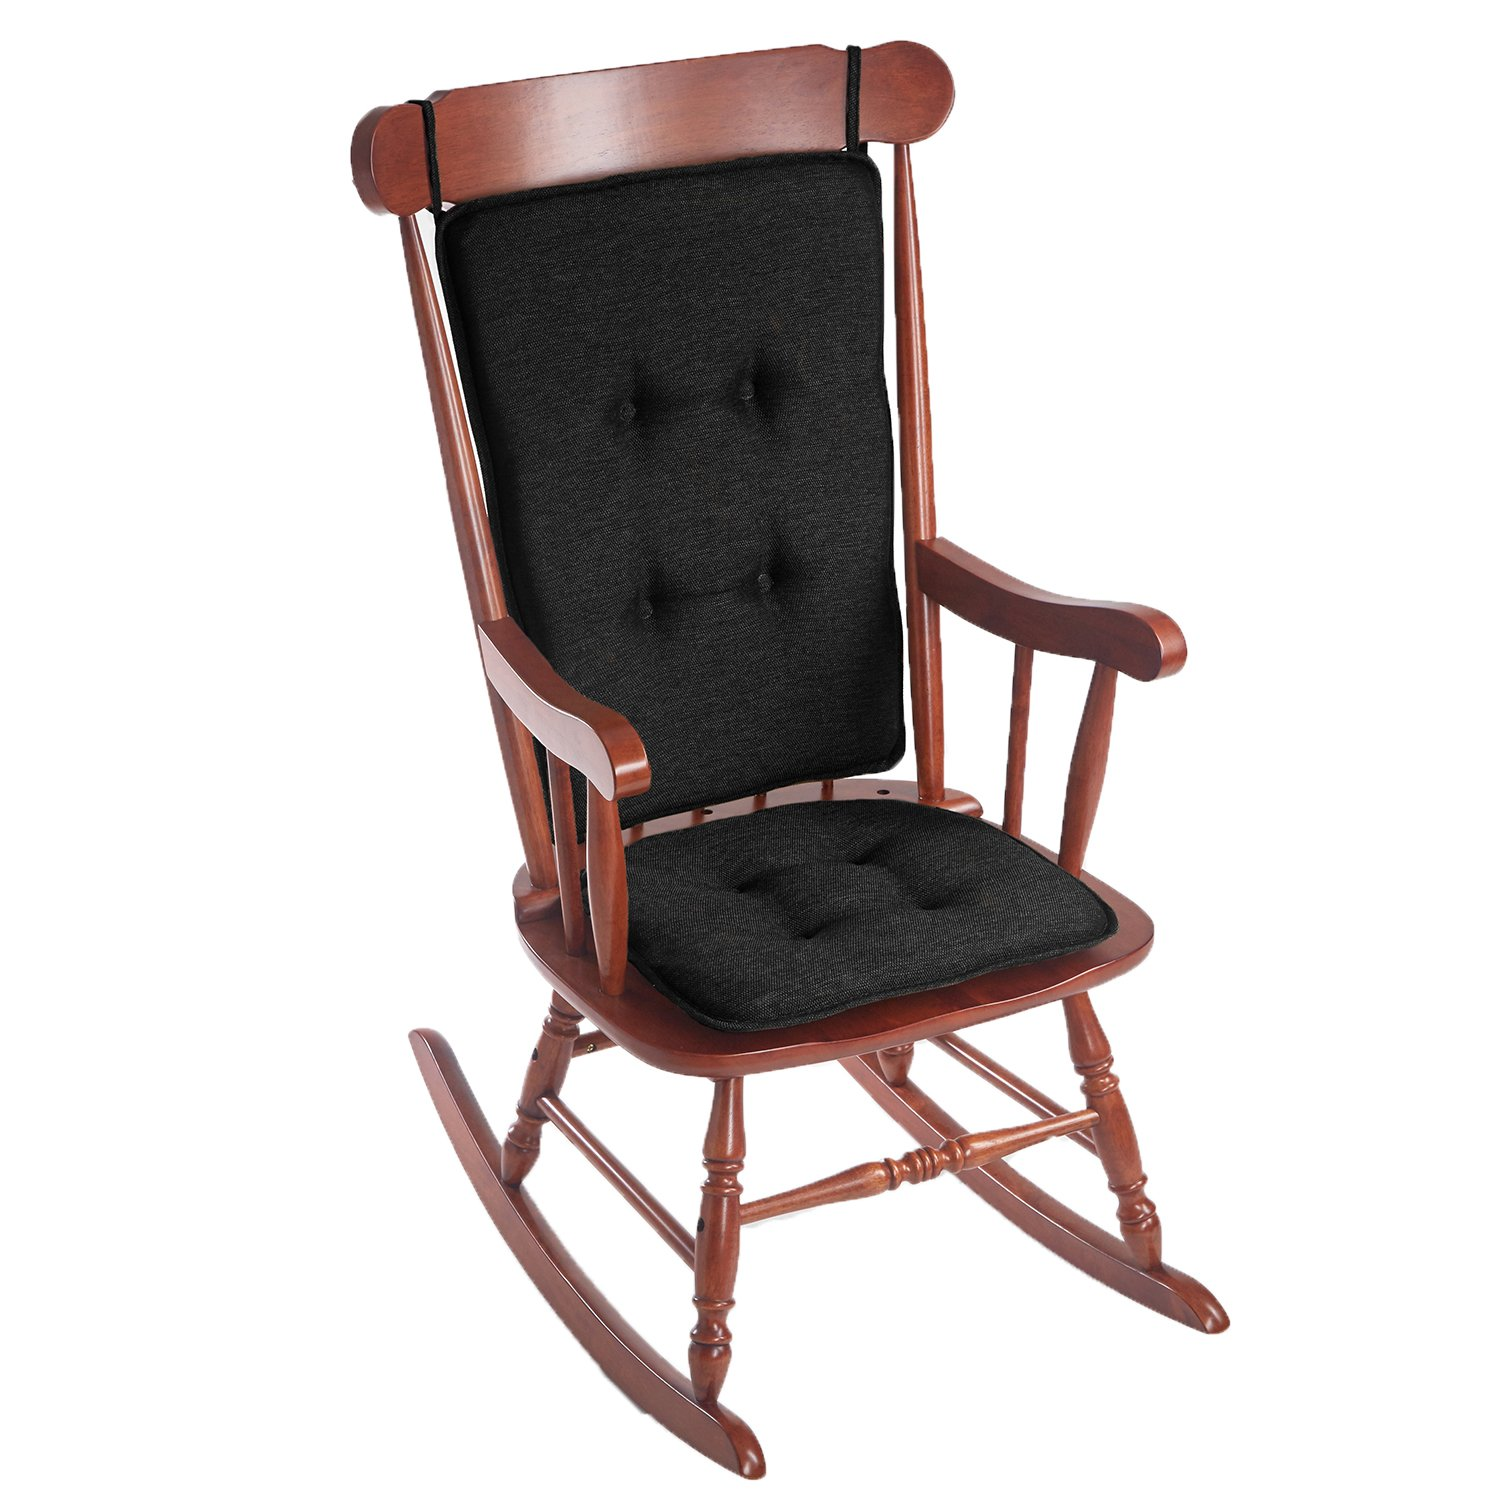 Rocking Chairs For Nursery Cheap Black Rocking Chair Nursery Find Black Rocking Chair